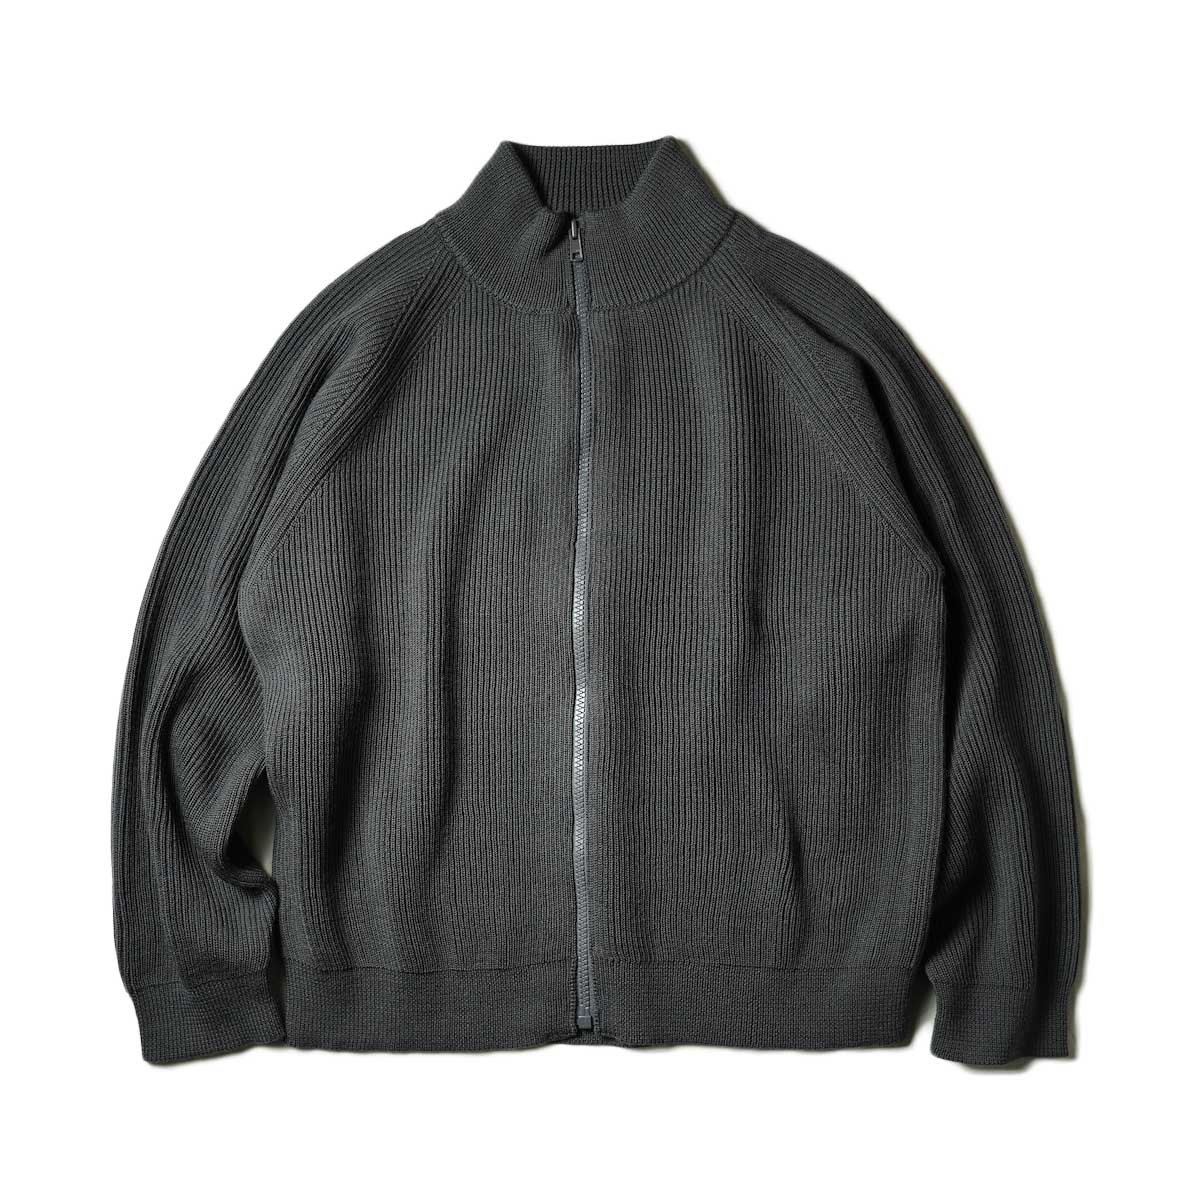 EVCON / DRIVERS SWEATER (Charcoal)